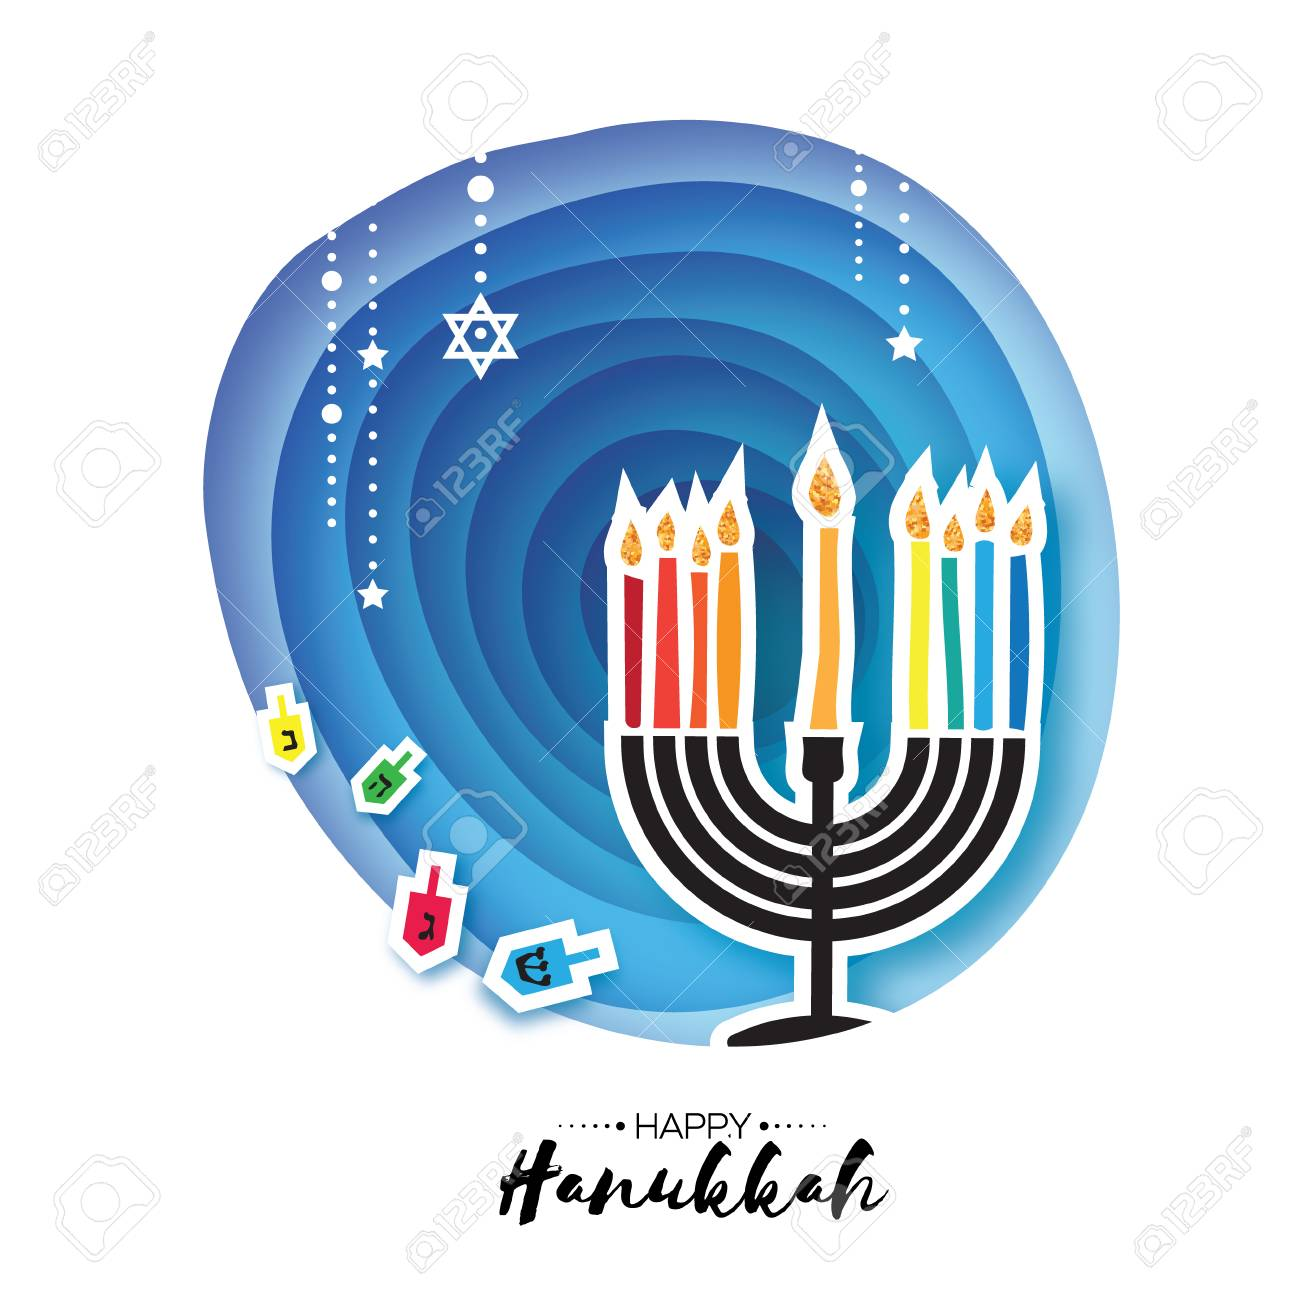 Origami happy hanukkah greeting card for the jewish holiday origami happy hanukkah greeting card for the jewish holiday menorah traditional candelabra and burning m4hsunfo